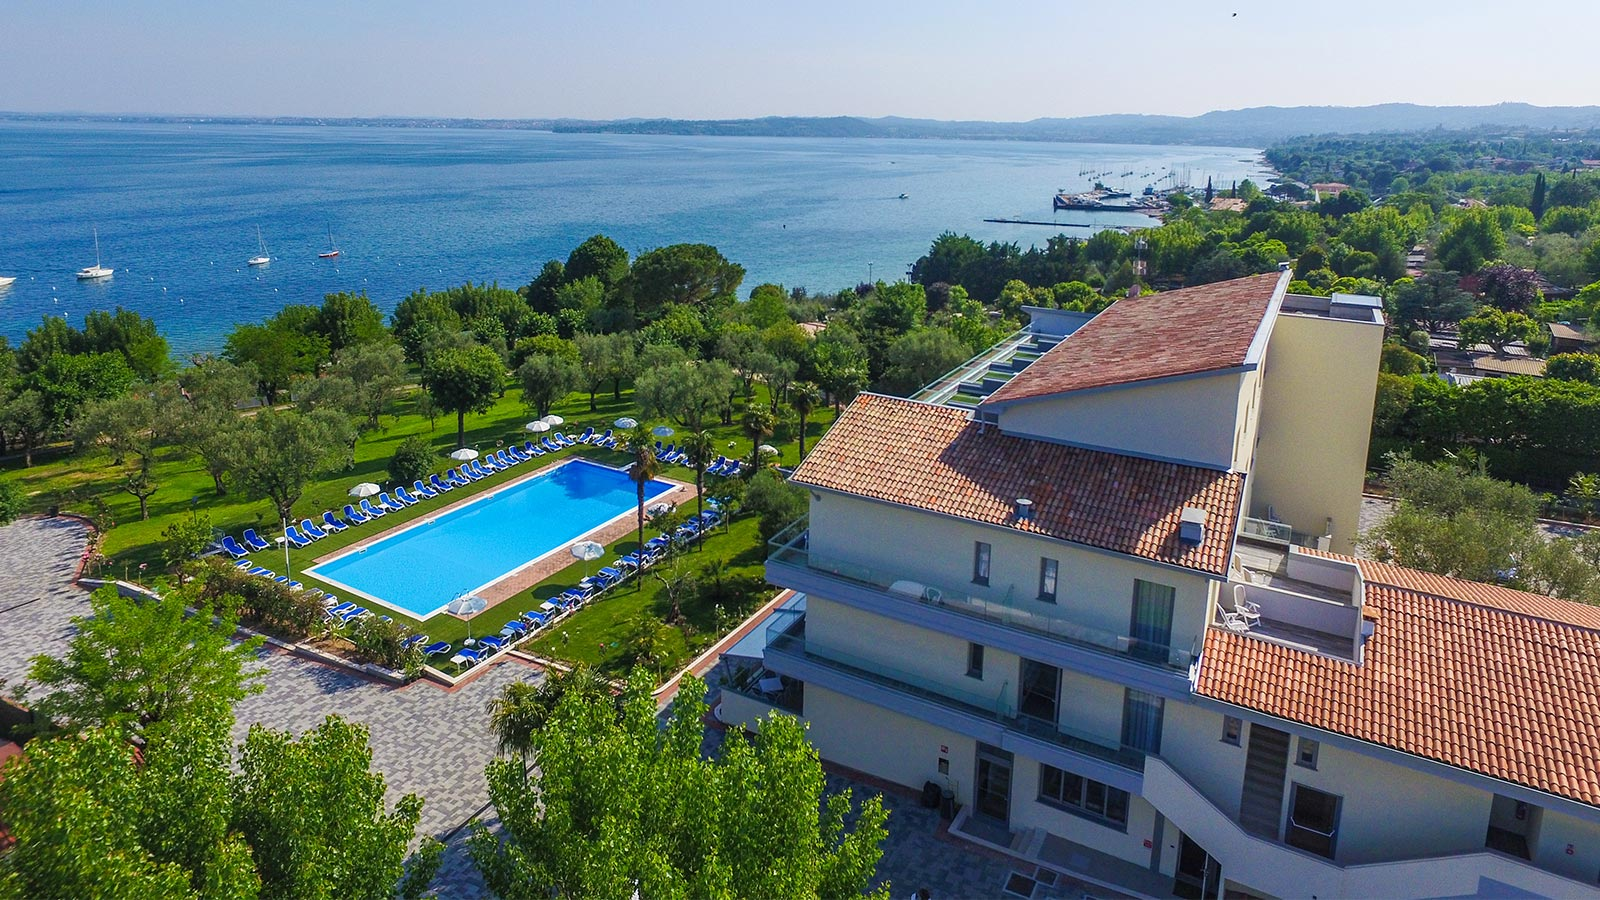 Beautiful picture of the Hotel Paradiso Suite and the Garda's shore